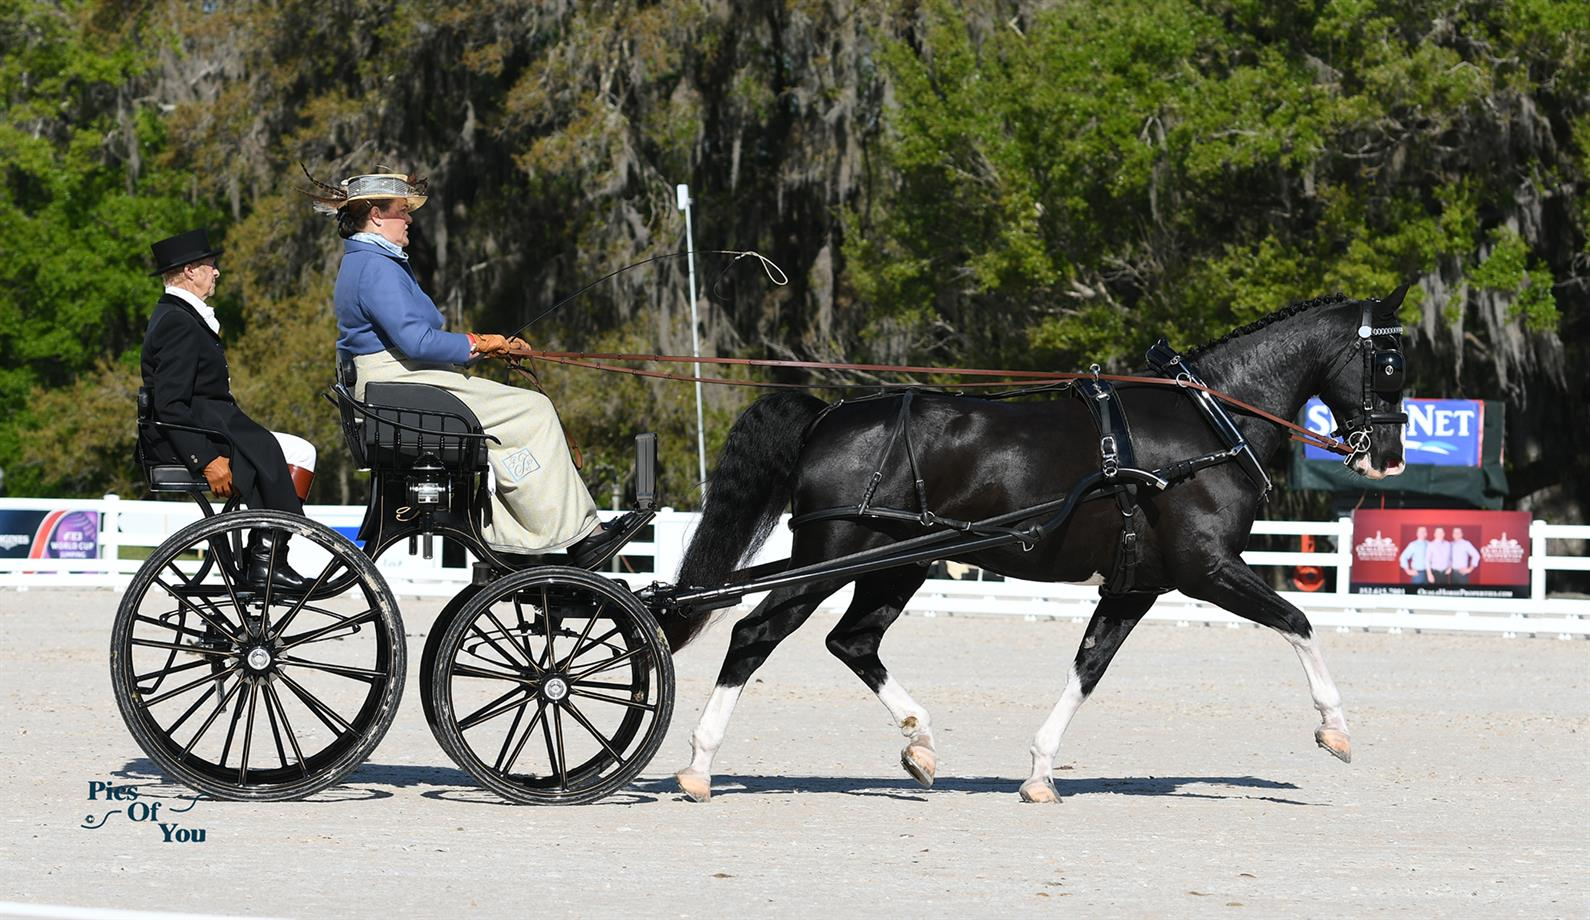 Thompson, Whittington, and Wright Secure Leads Following Dressage in